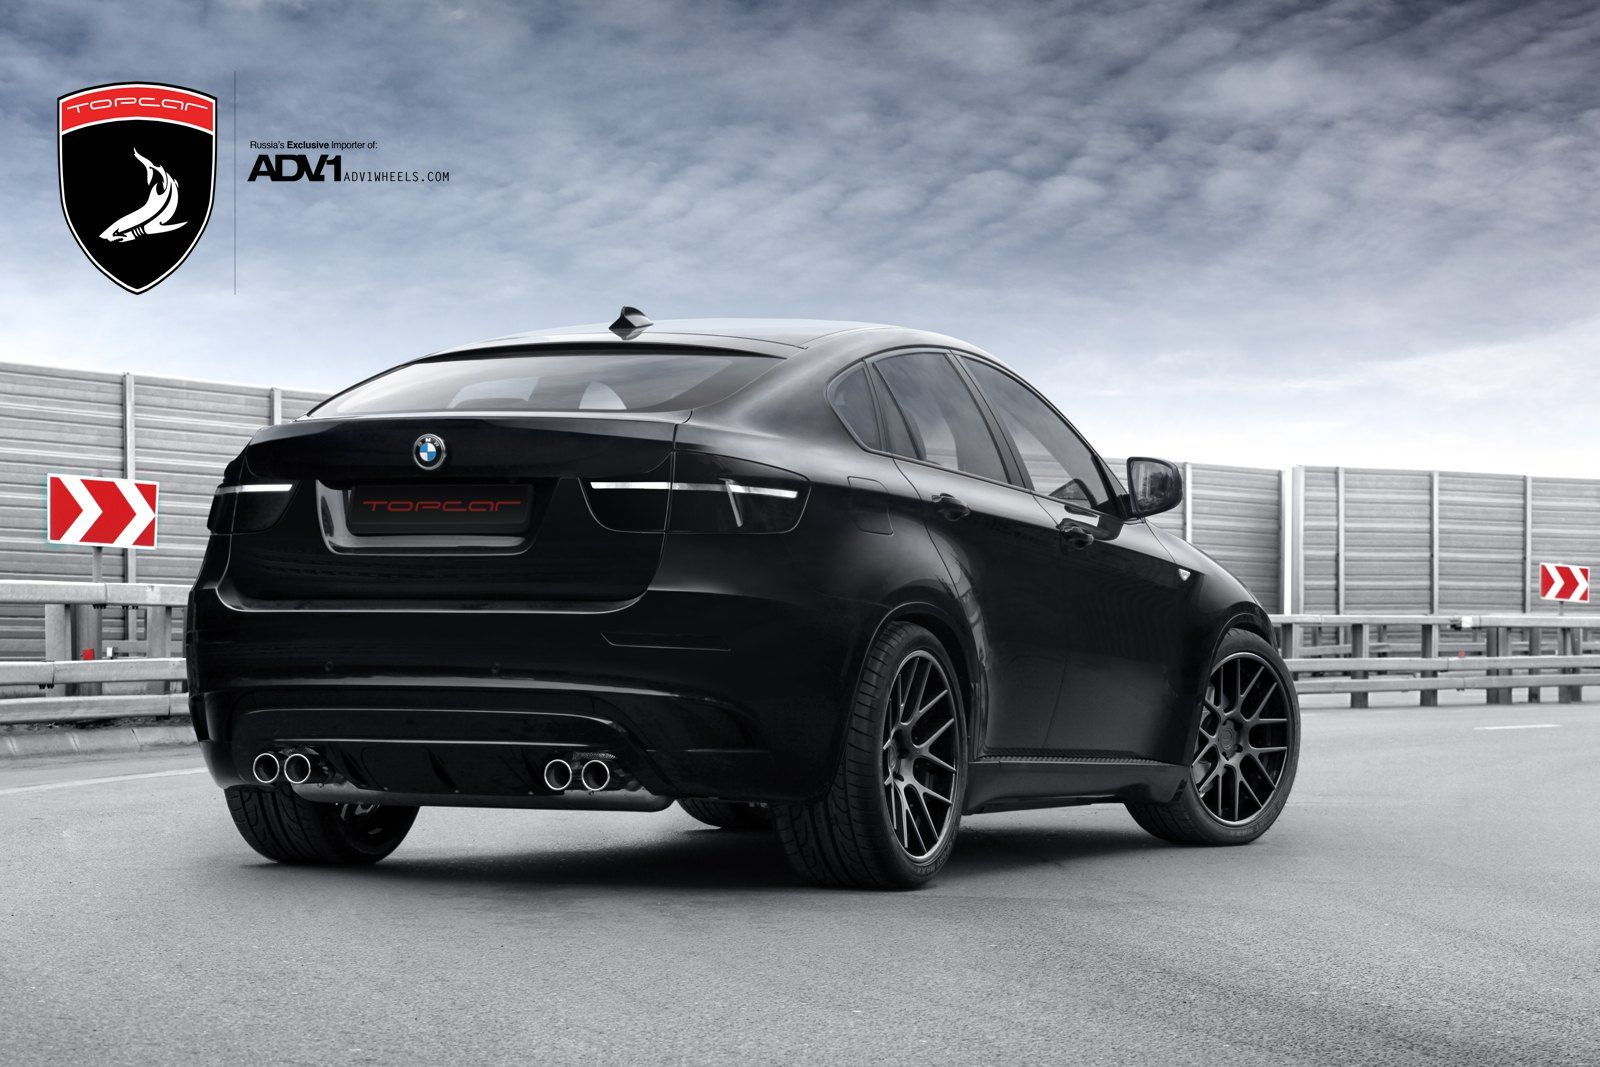 Matte Black Bmw X6 With Black Taillights And Custom Wheels In 2020 Matte Black Bmw Bmw X6 Bmw